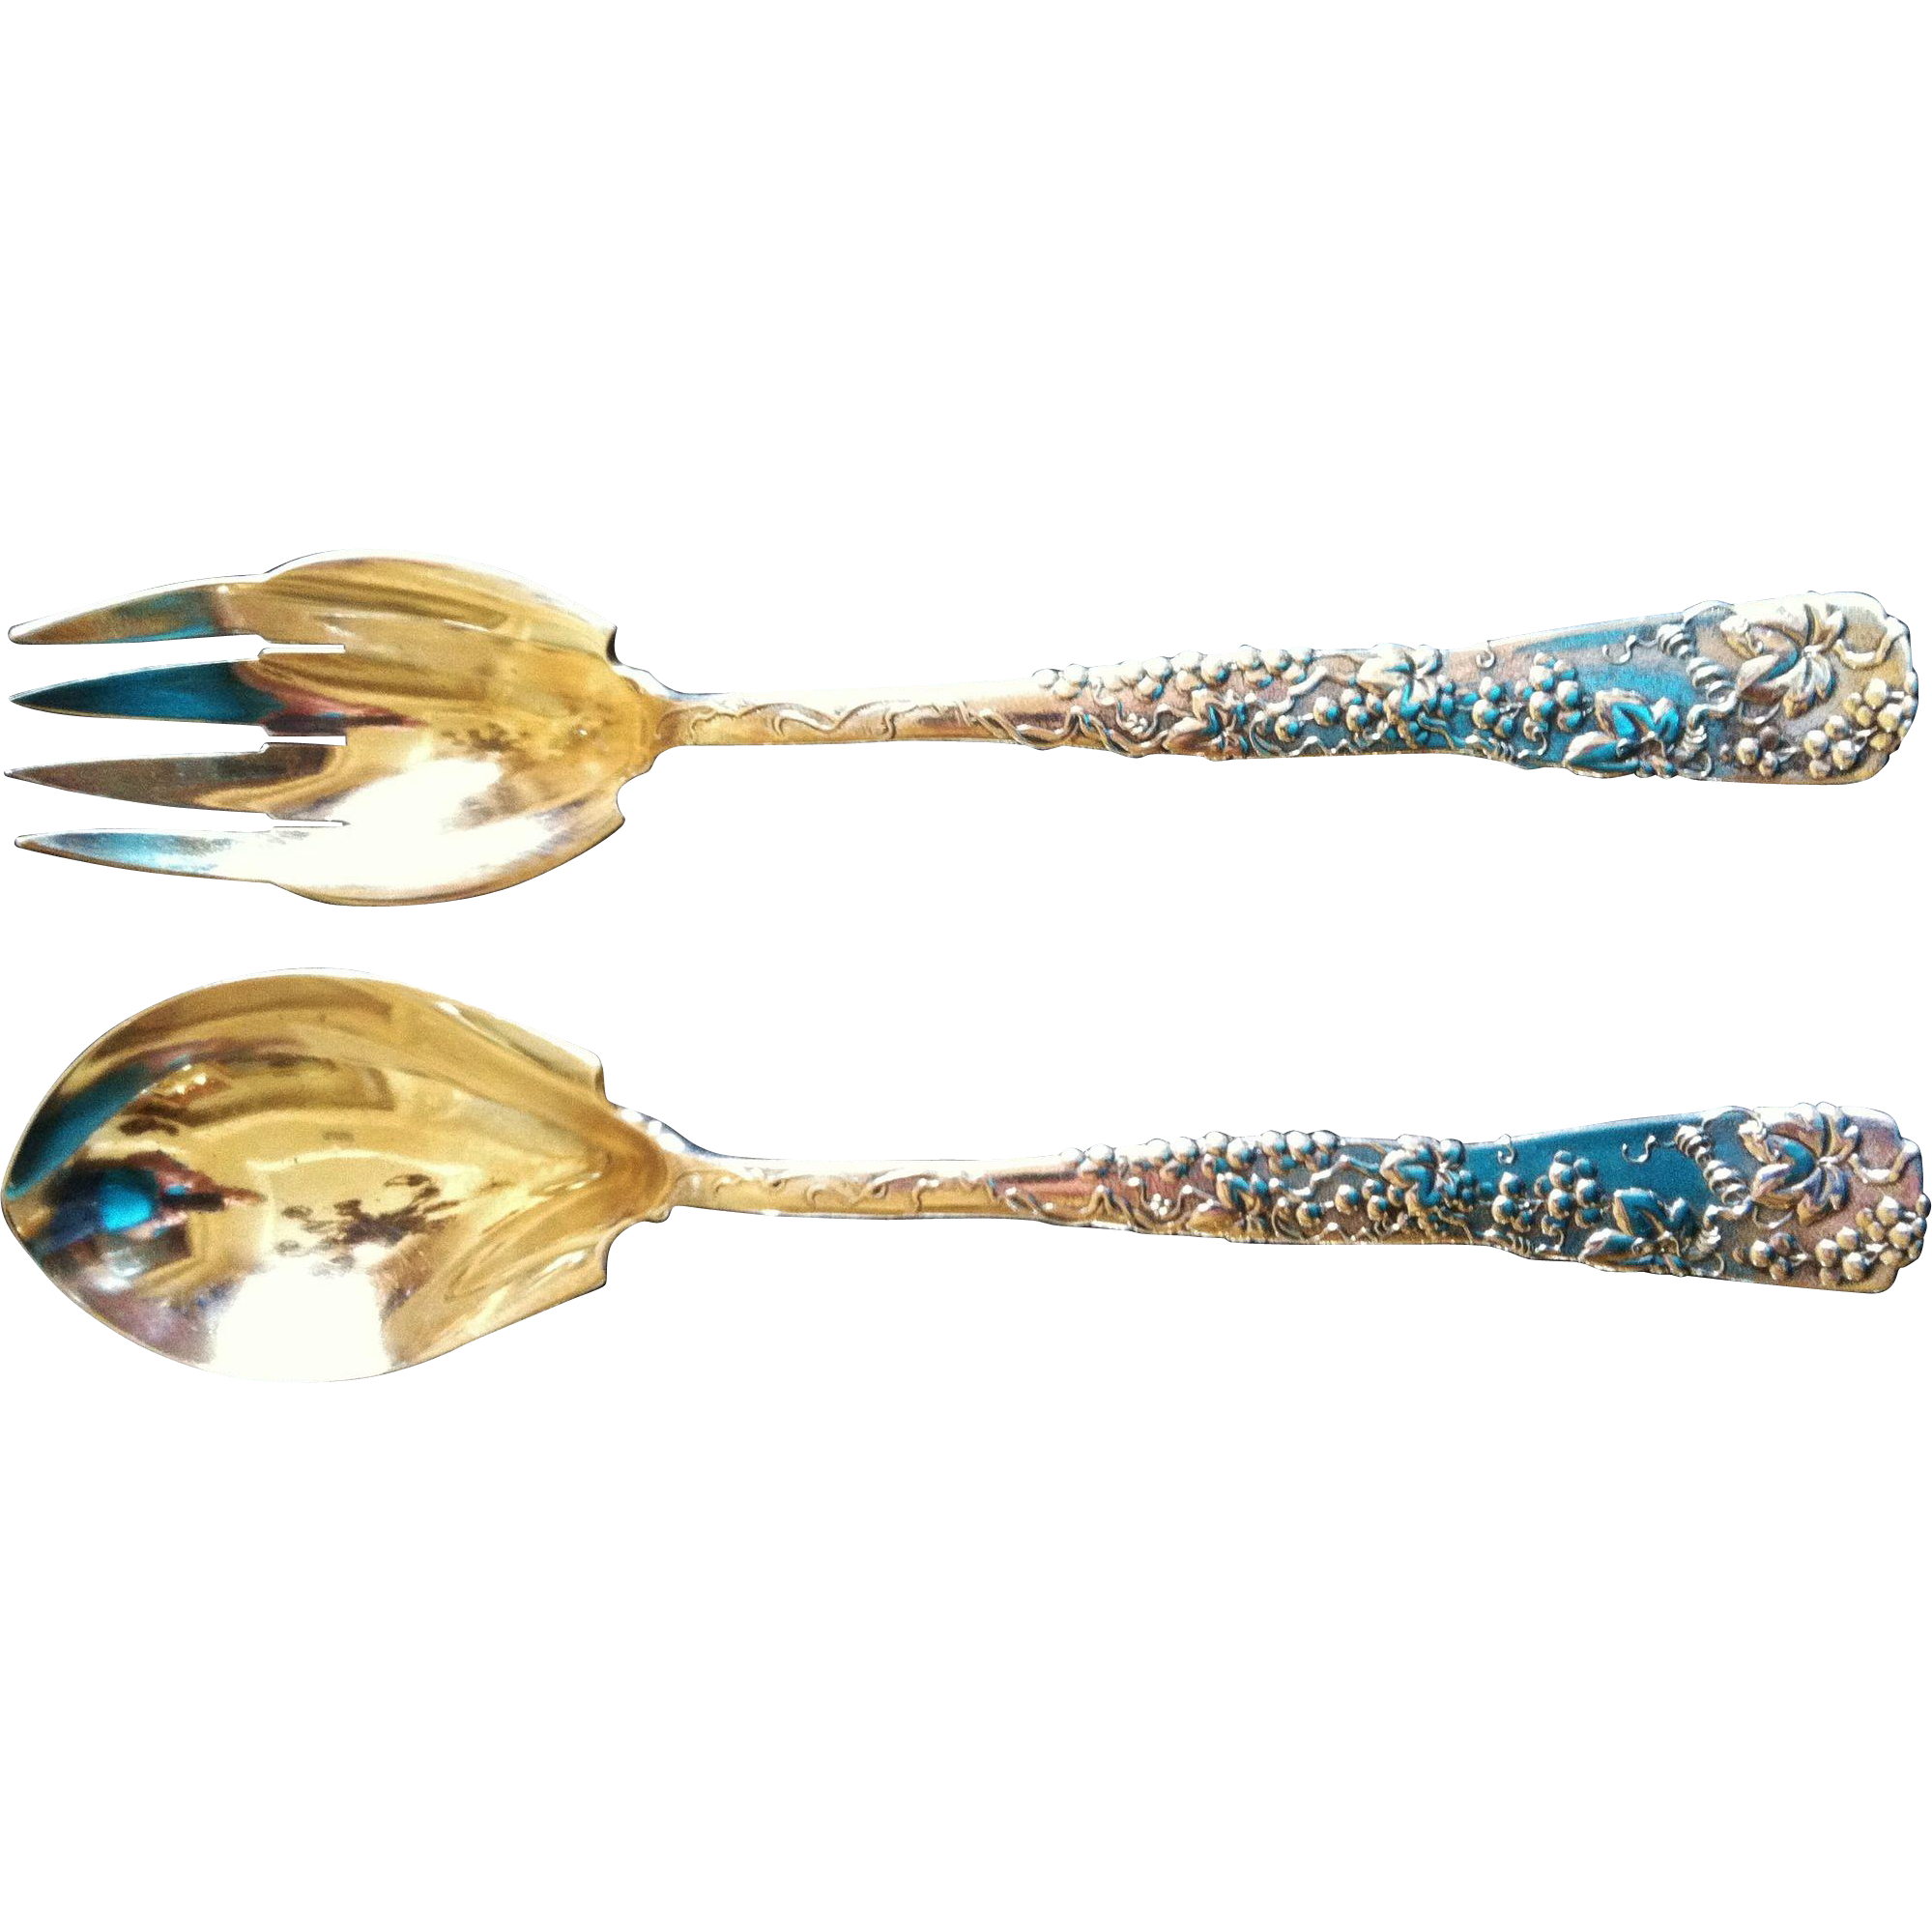 Tiffany Sterling Silver 2 Piece Salad Set, Vine Pattern, CA.1890